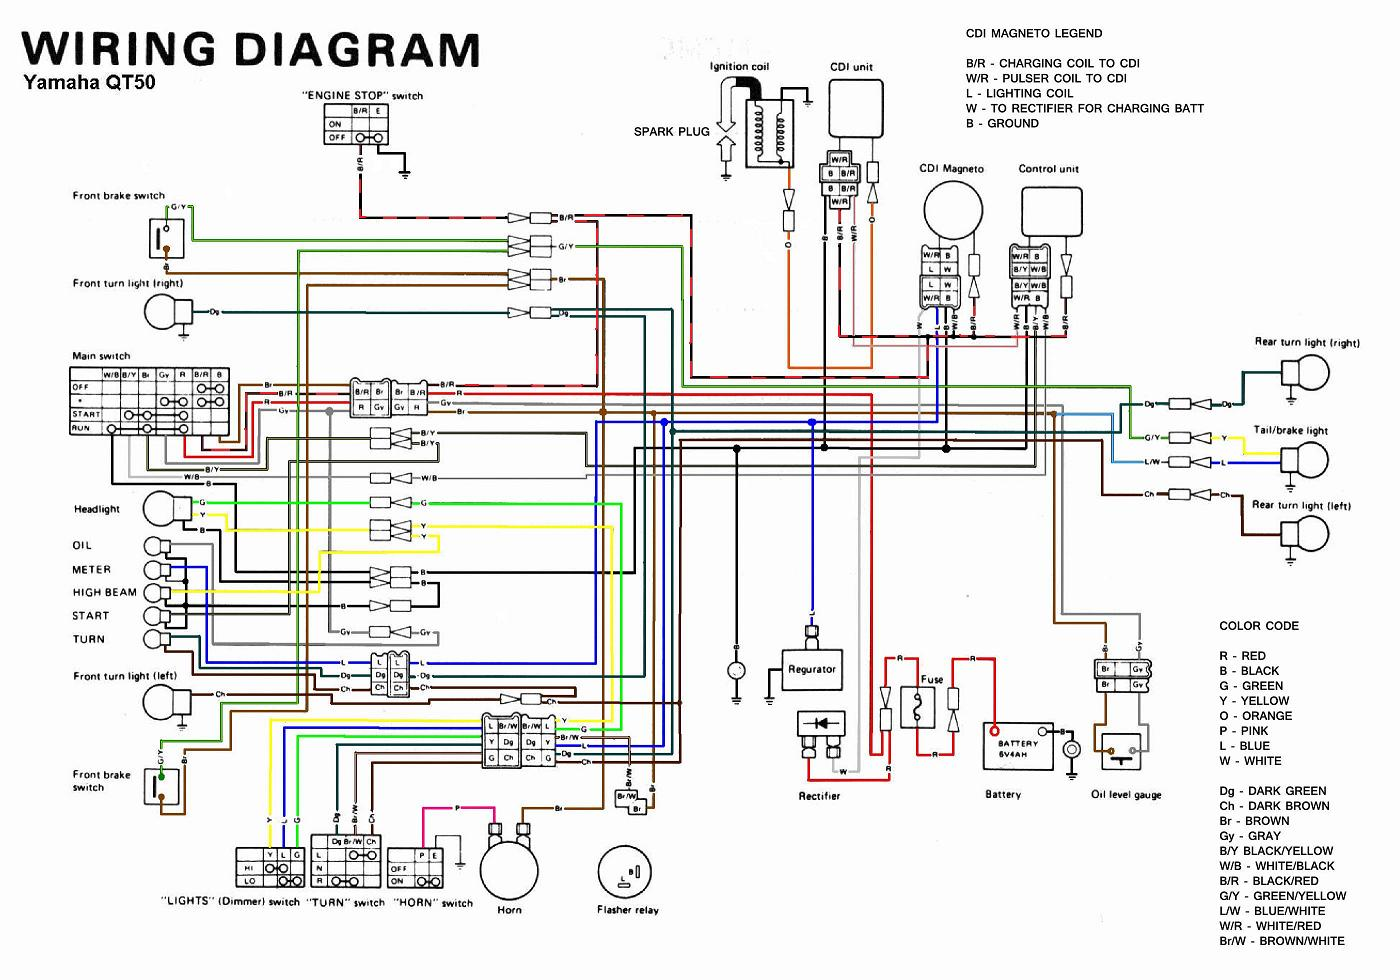 yamaha qt50 wiring diagram yamaha qt50 luvin and other nopeds rh qt50 net